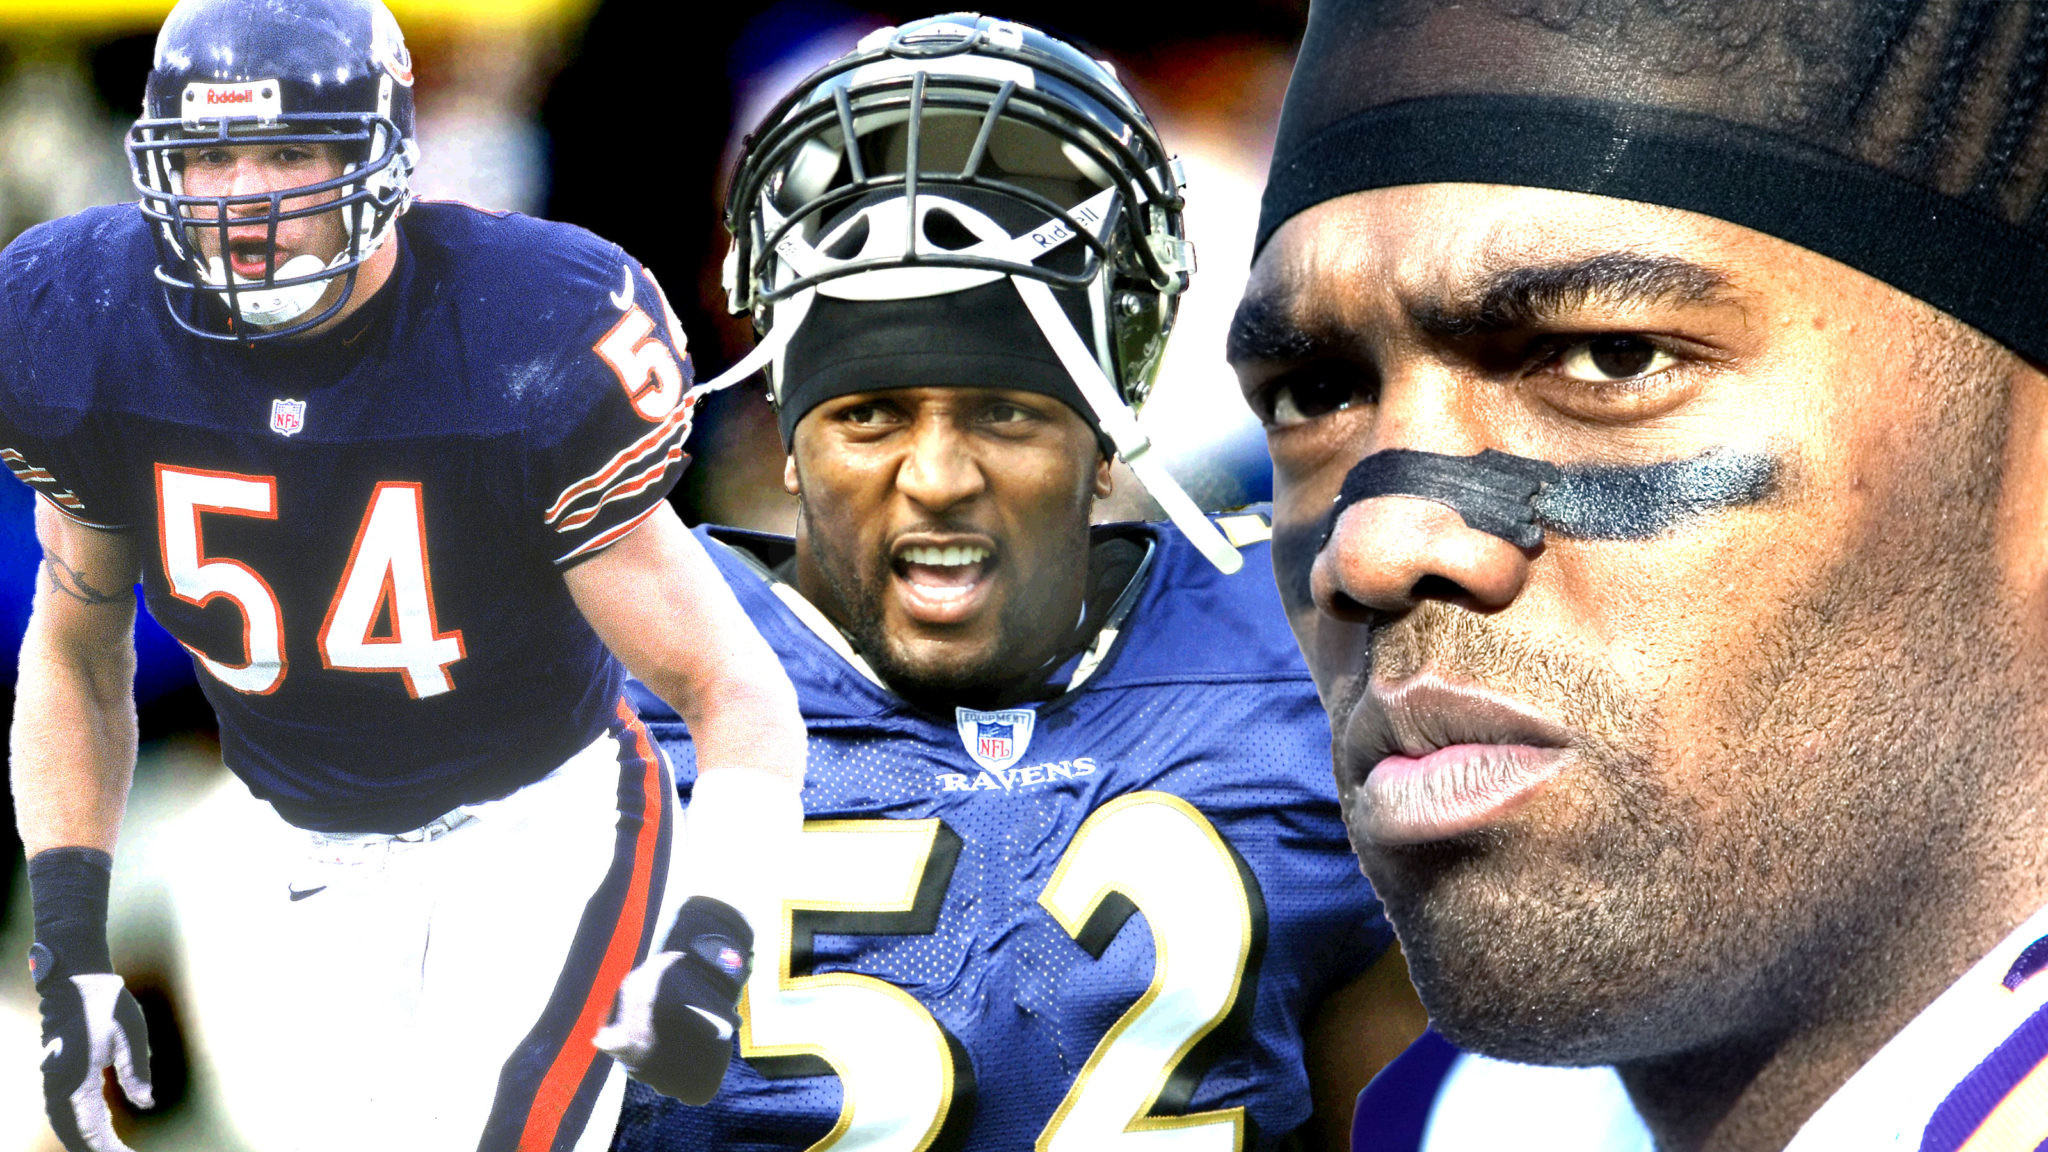 Res: 2048x1152, Pro Football Hall of Fame class 2018